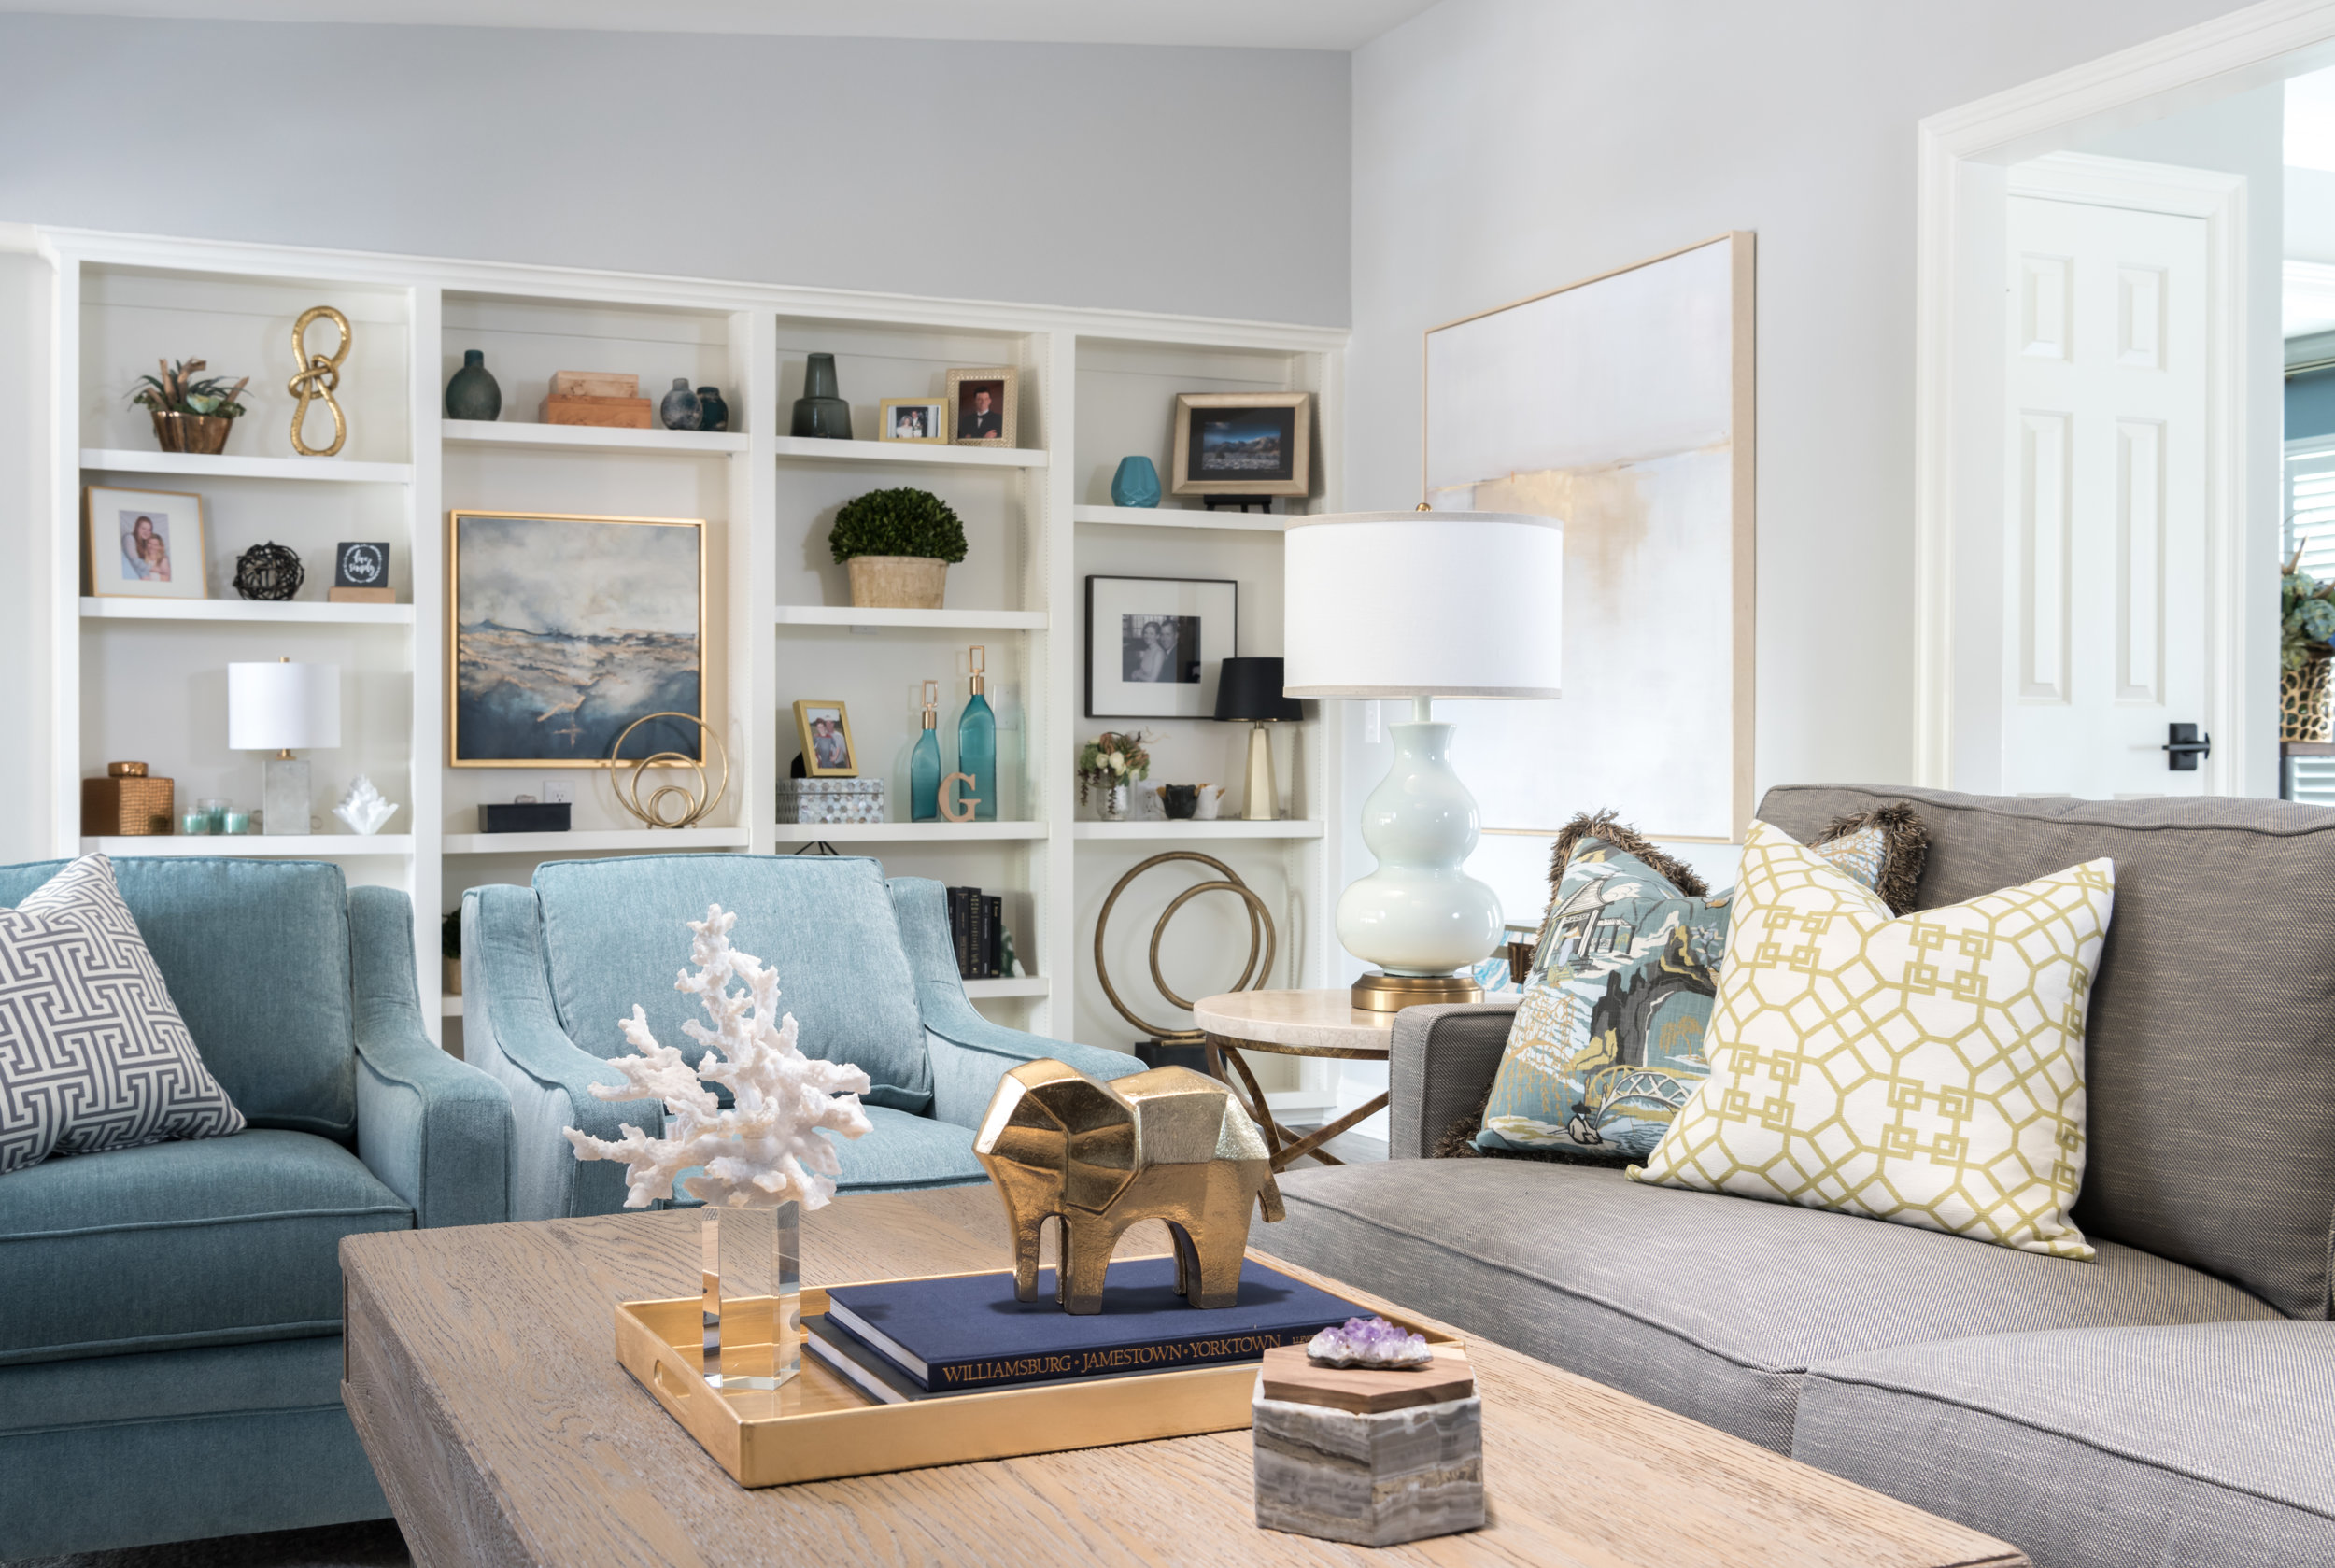 In this home, we kept it simple and left plenty of room for family photos. Taking out a shelf and adding a larger piece of art creates a focal point and allows it to feel less cluttered. Source: Studiosteidley.com